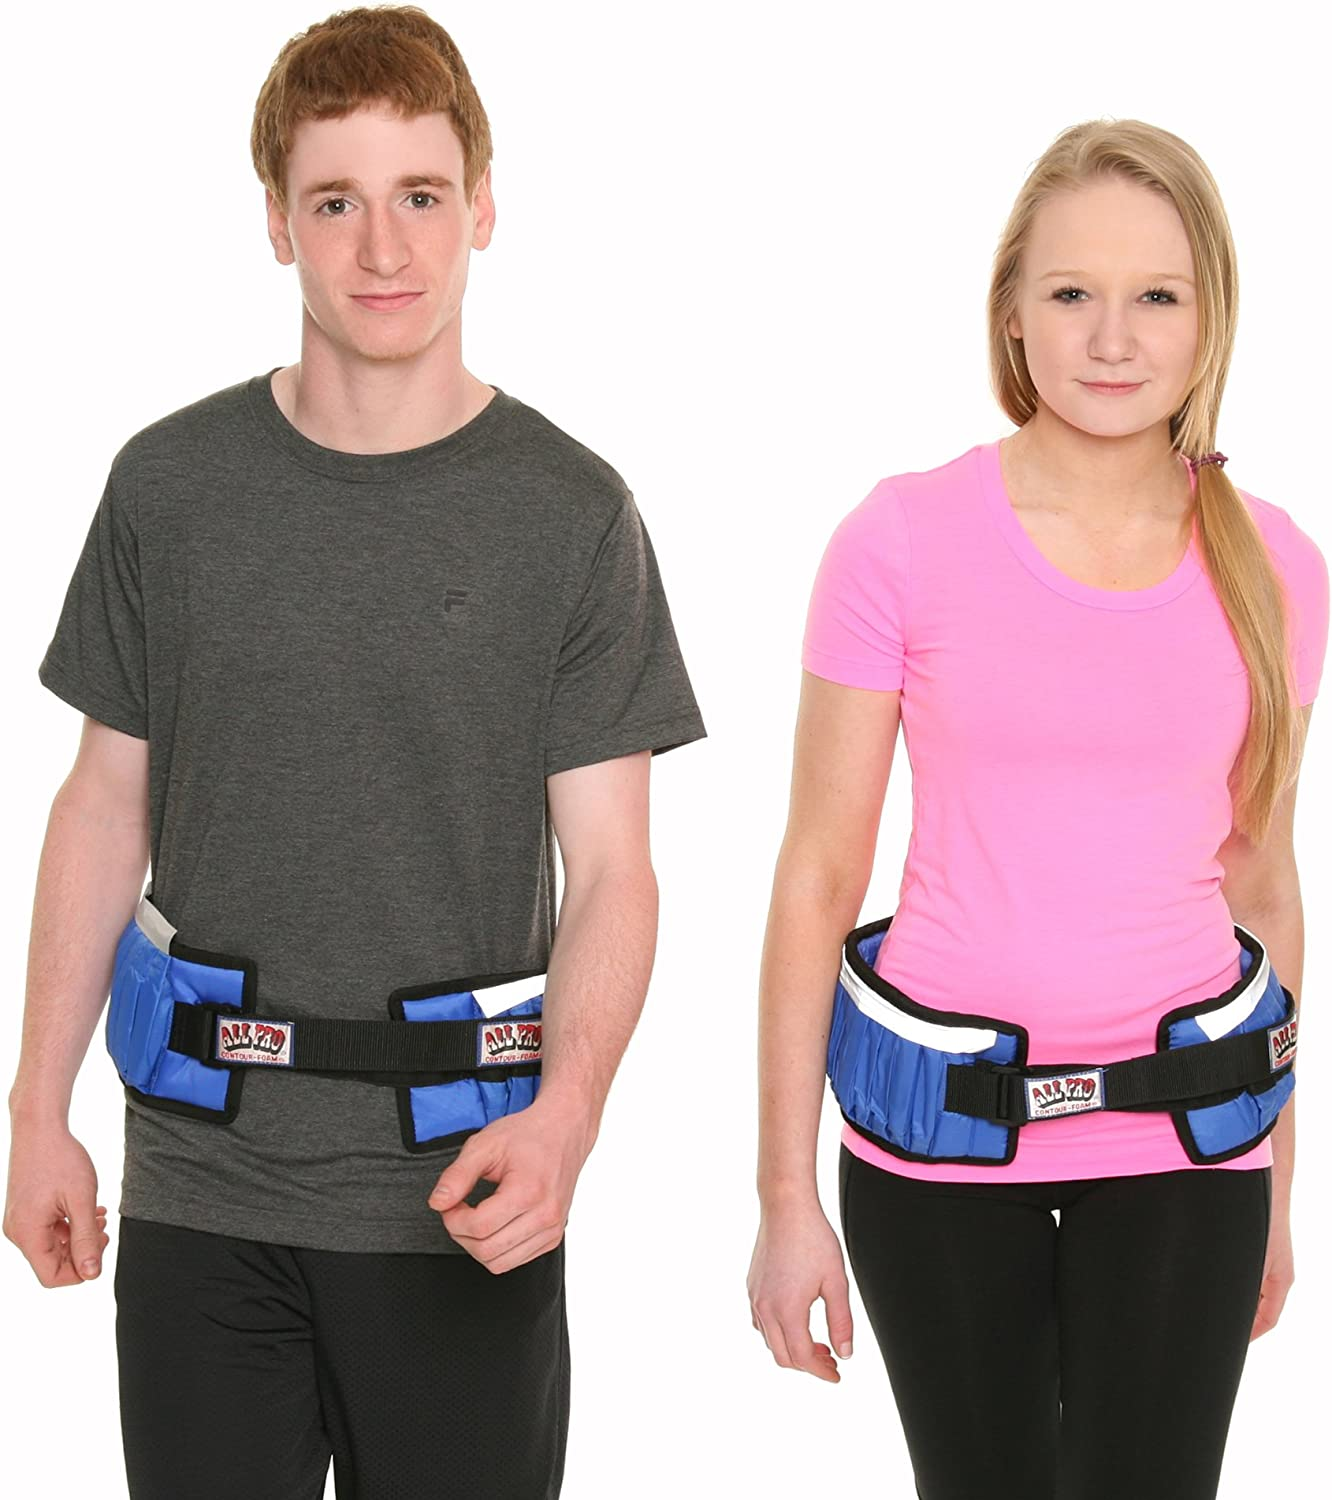 All Pro Weight Adjustable Power Stride Exercise Belt, 10-Pound